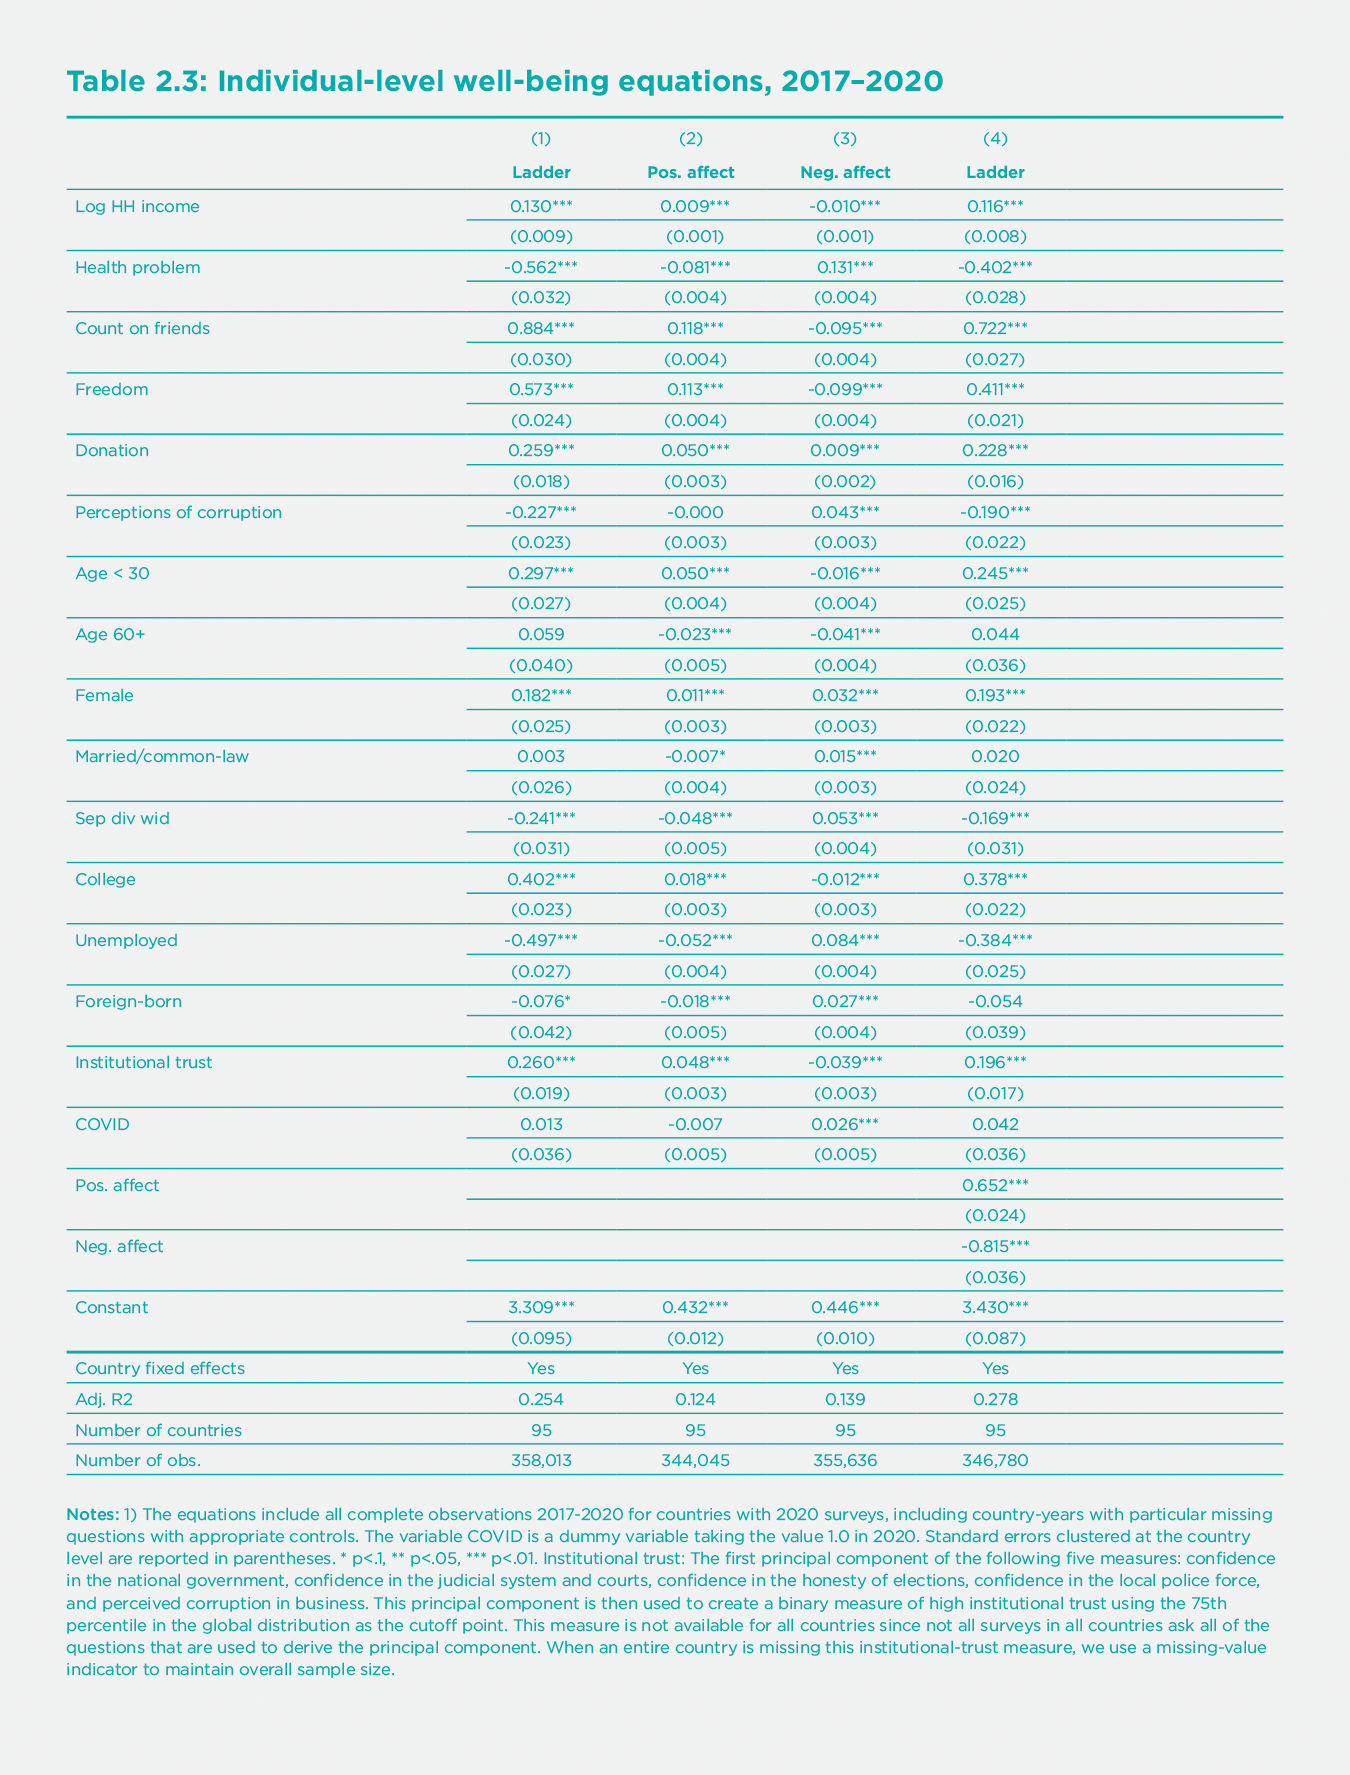 Table 2.3. Individual-level well-being equations, 2017-2020